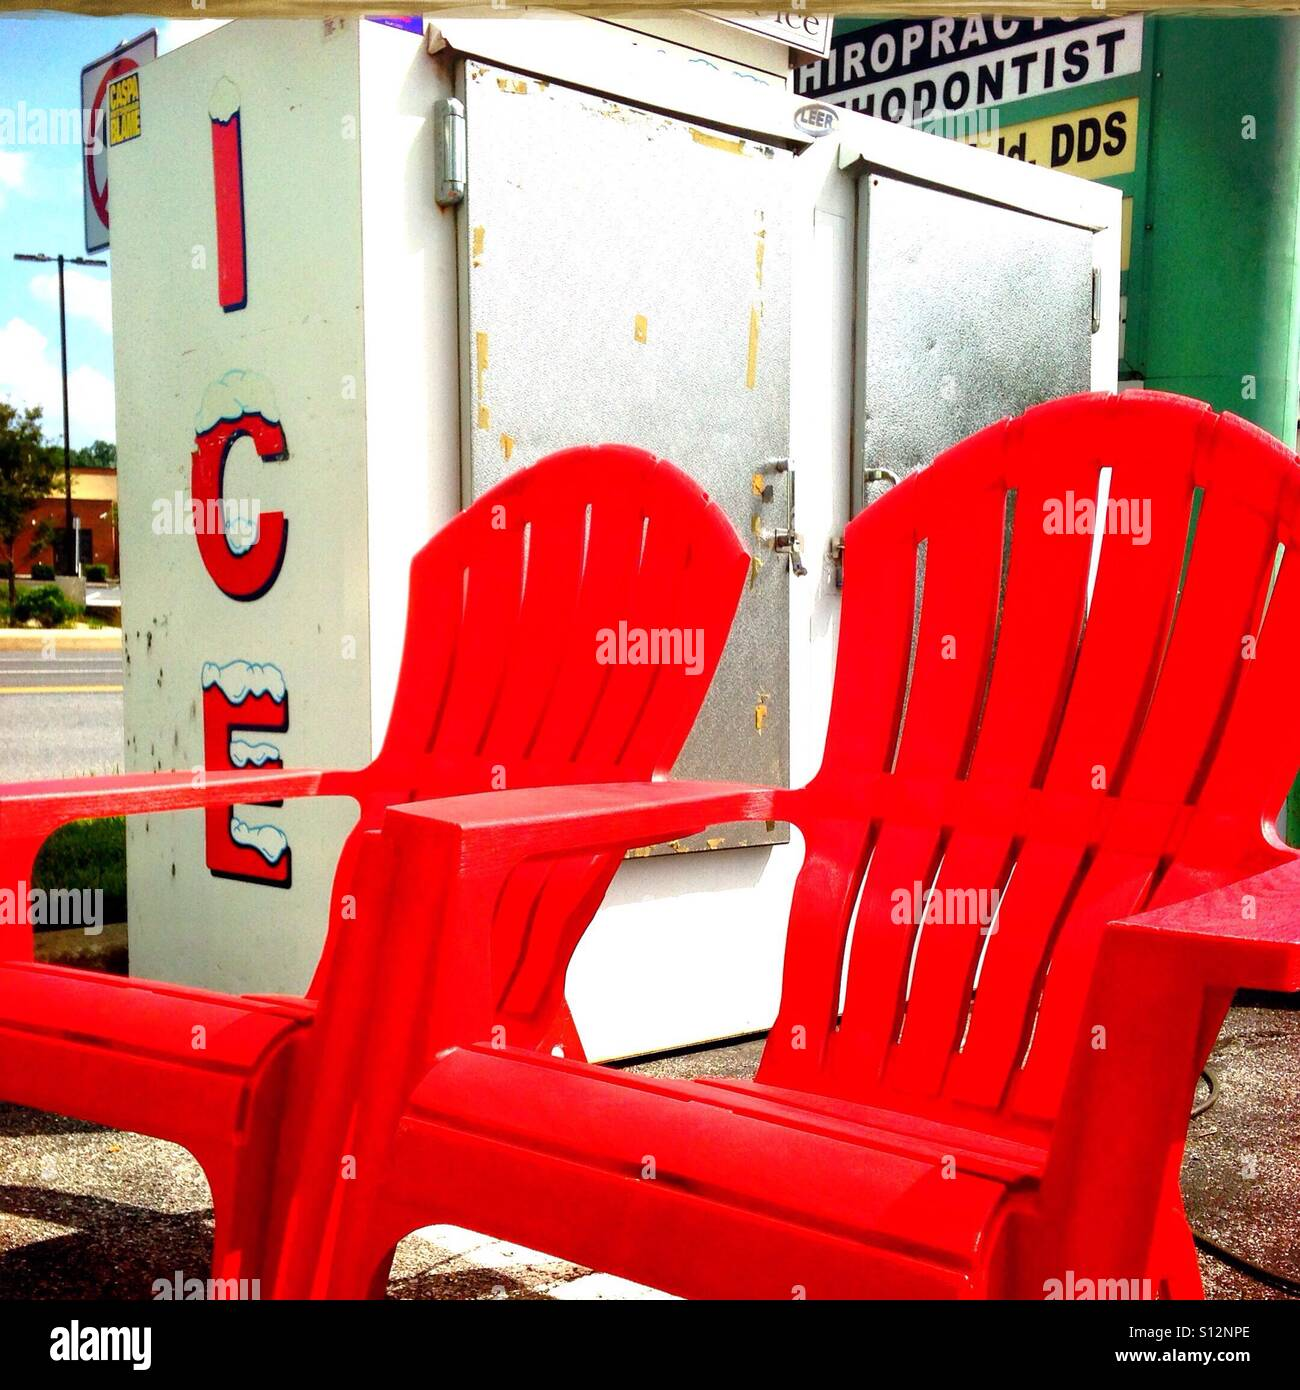 Icy red hot: An ice box next to Cherry red chairs on a hot summer day. - Stock Image